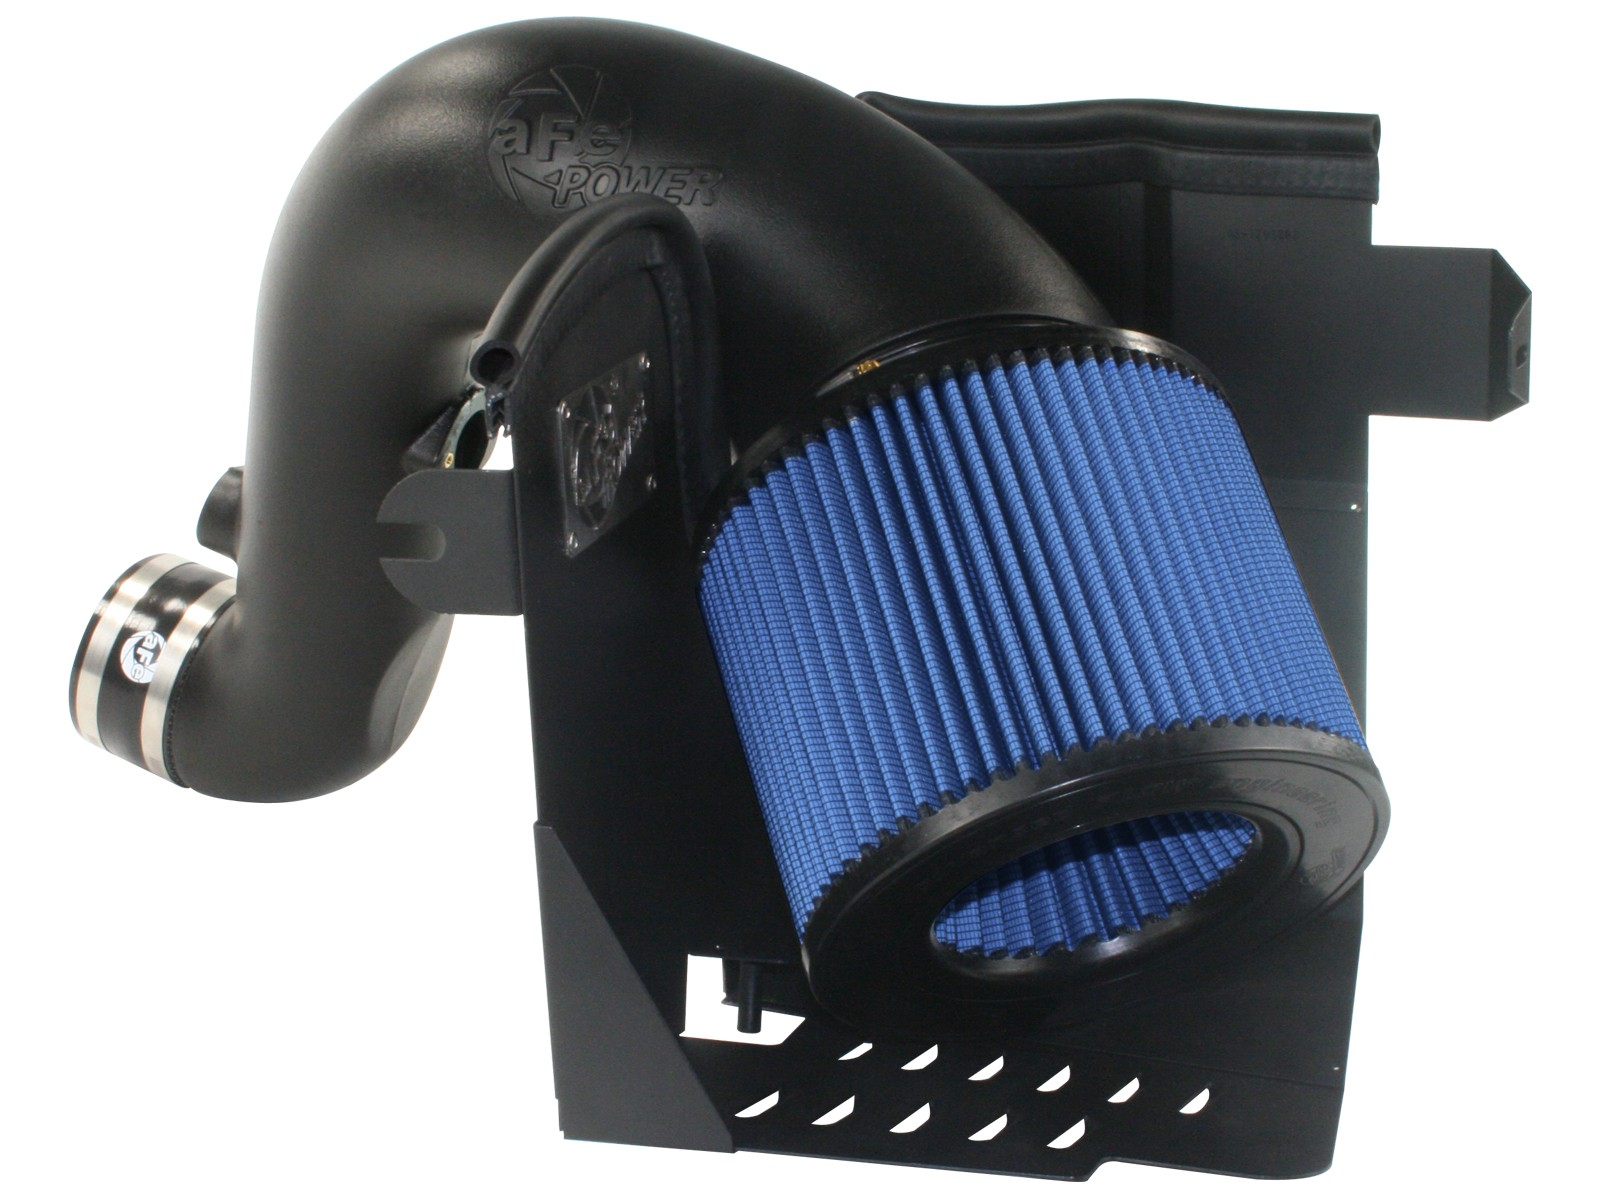 aFe POWER 54-12032 Magnum FORCE Stage-2 Pro 5R Cold Air Intake System